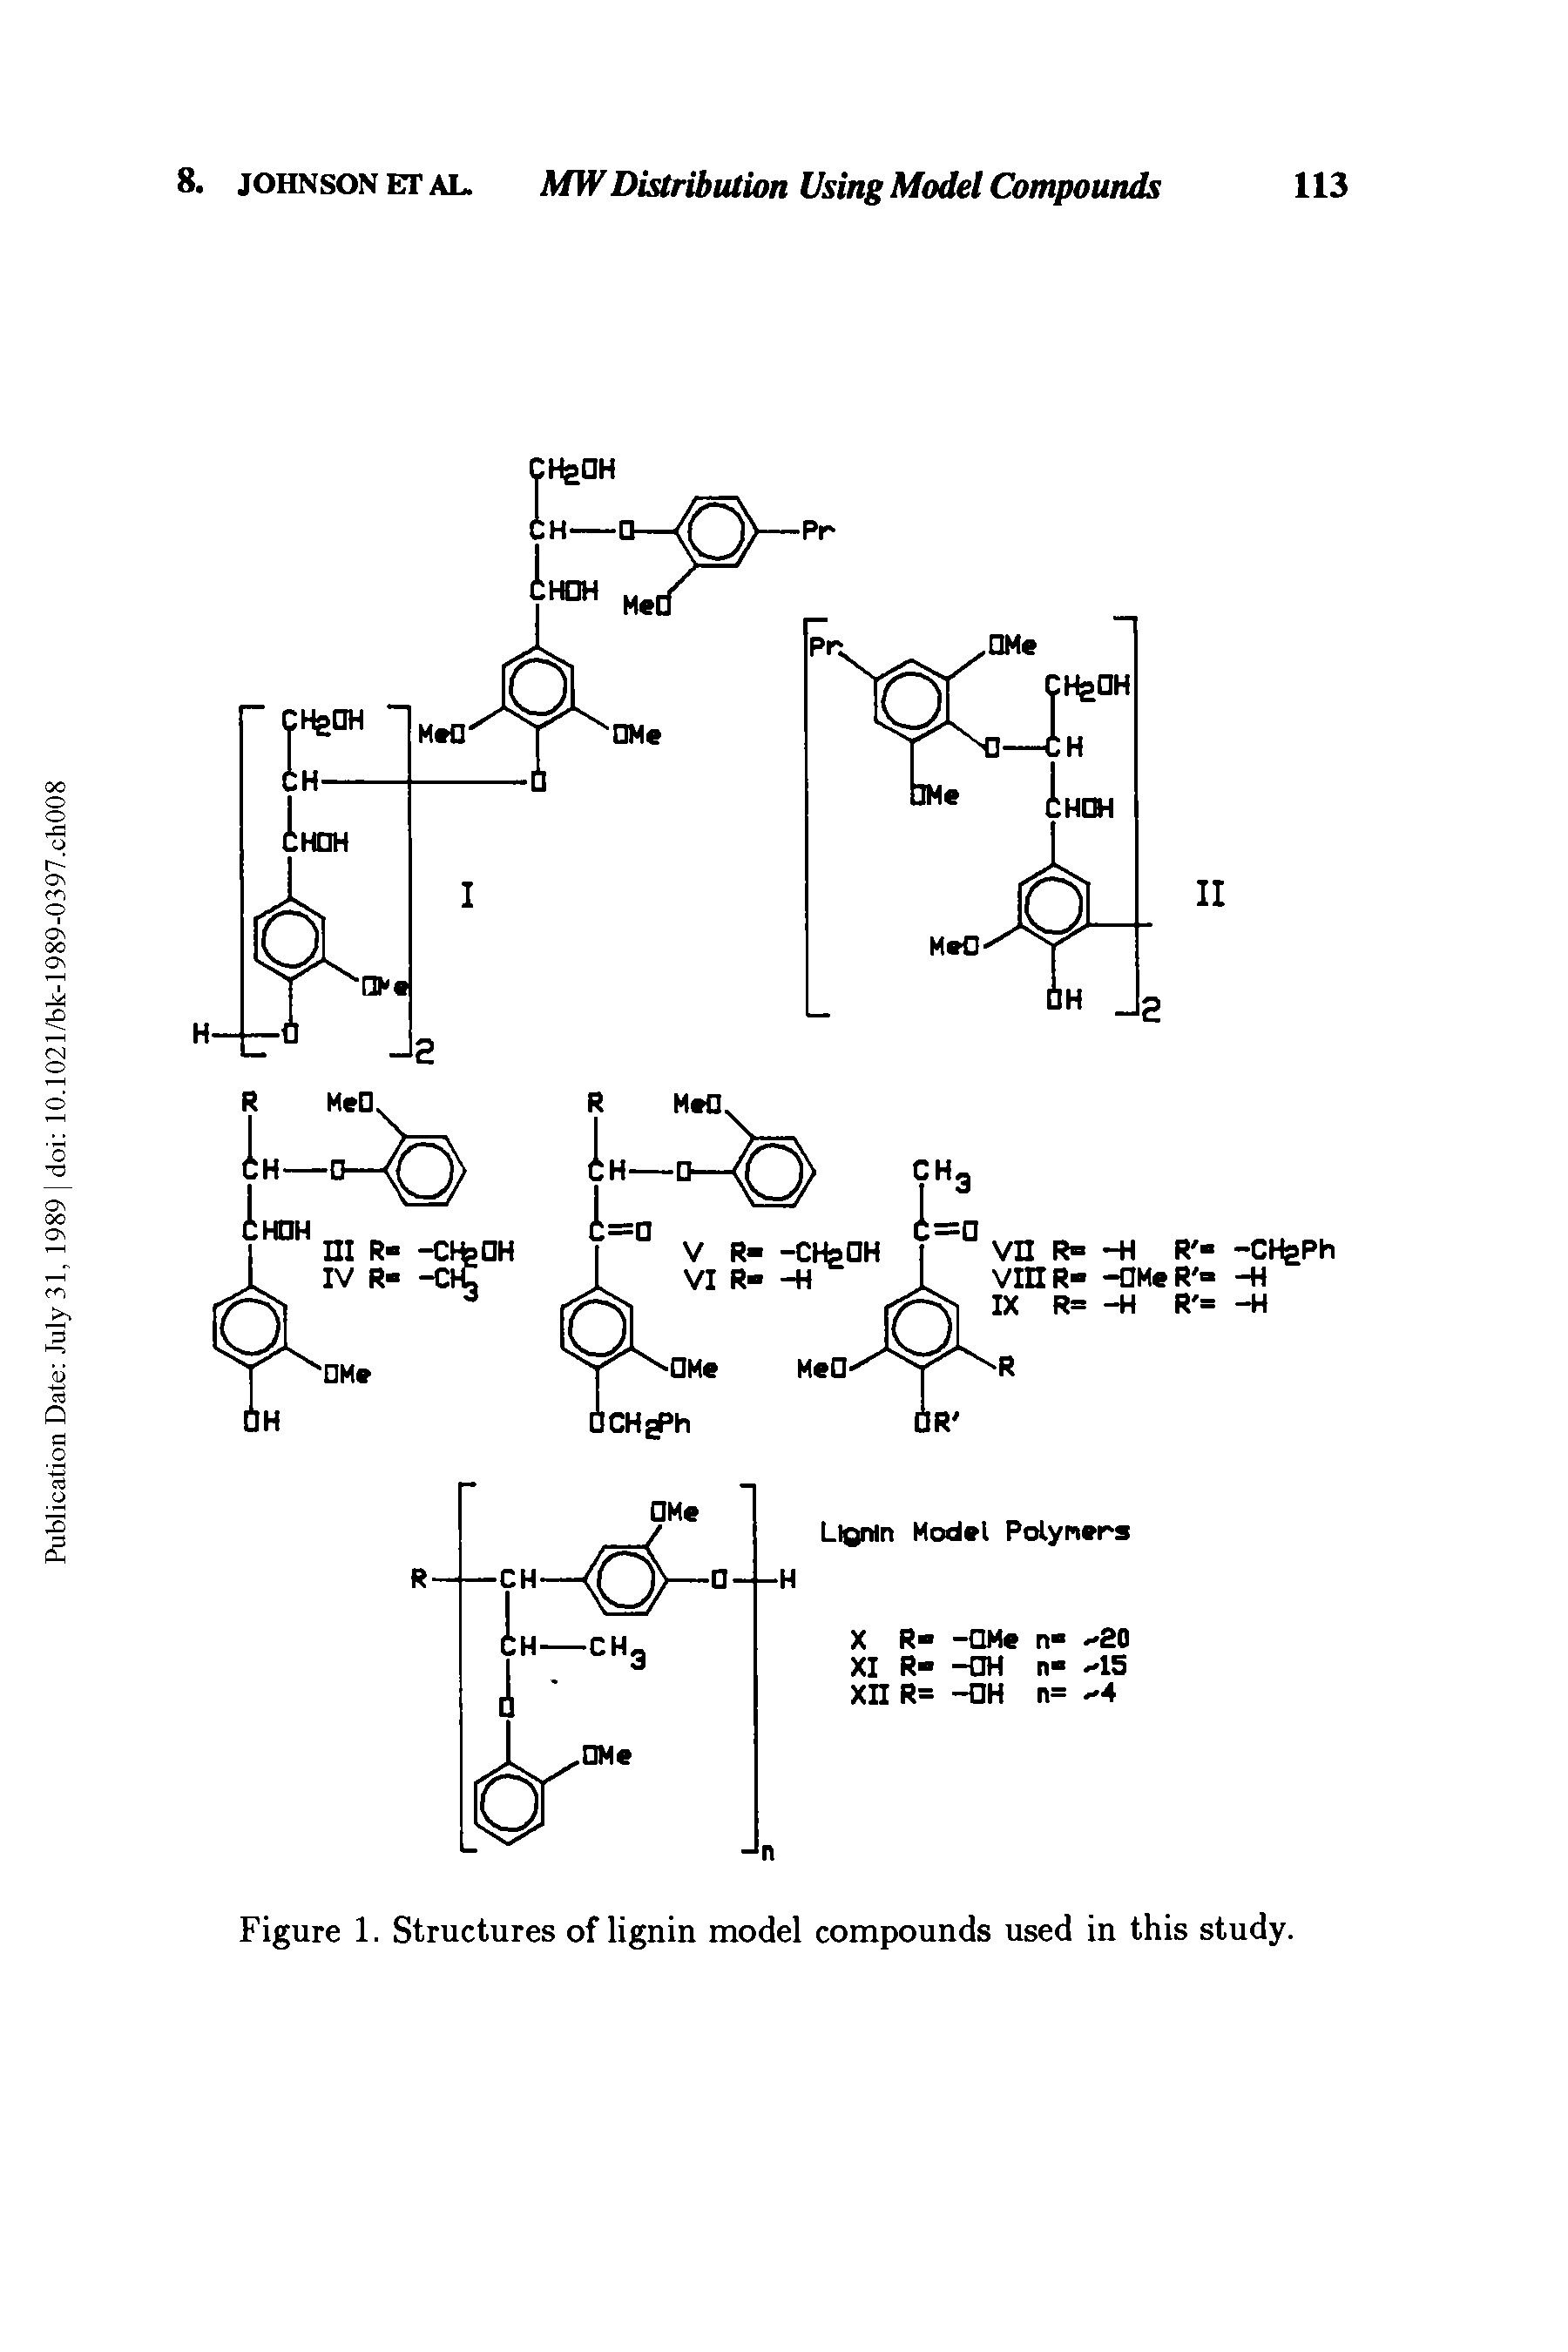 "Figure 1. Structures of <a href=""/info/lignin_model_compounds"">lignin model compounds</a> used in this study."